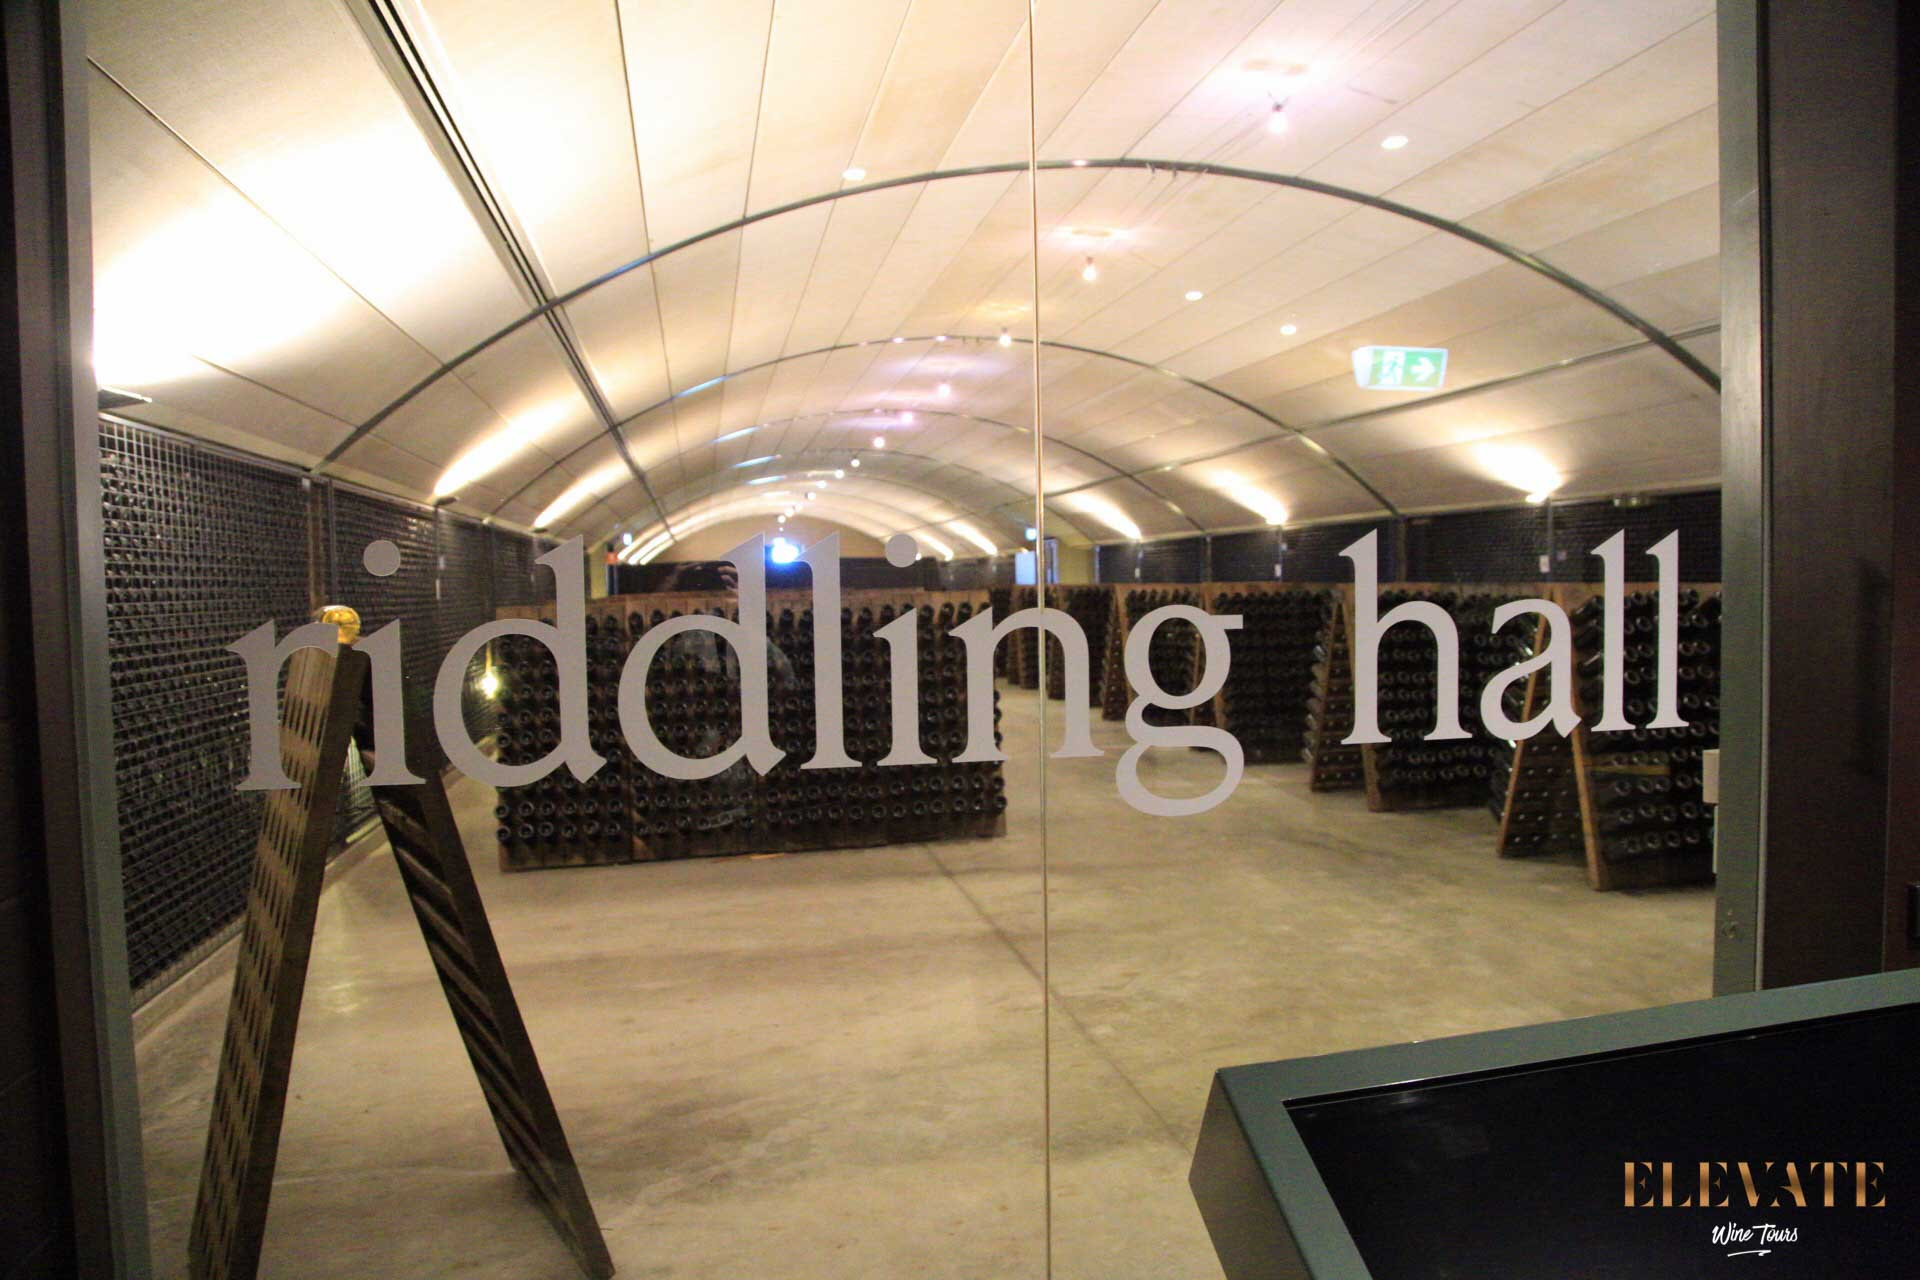 RIDDLING-HALL-DOMAINE-YARRA-VALLEY